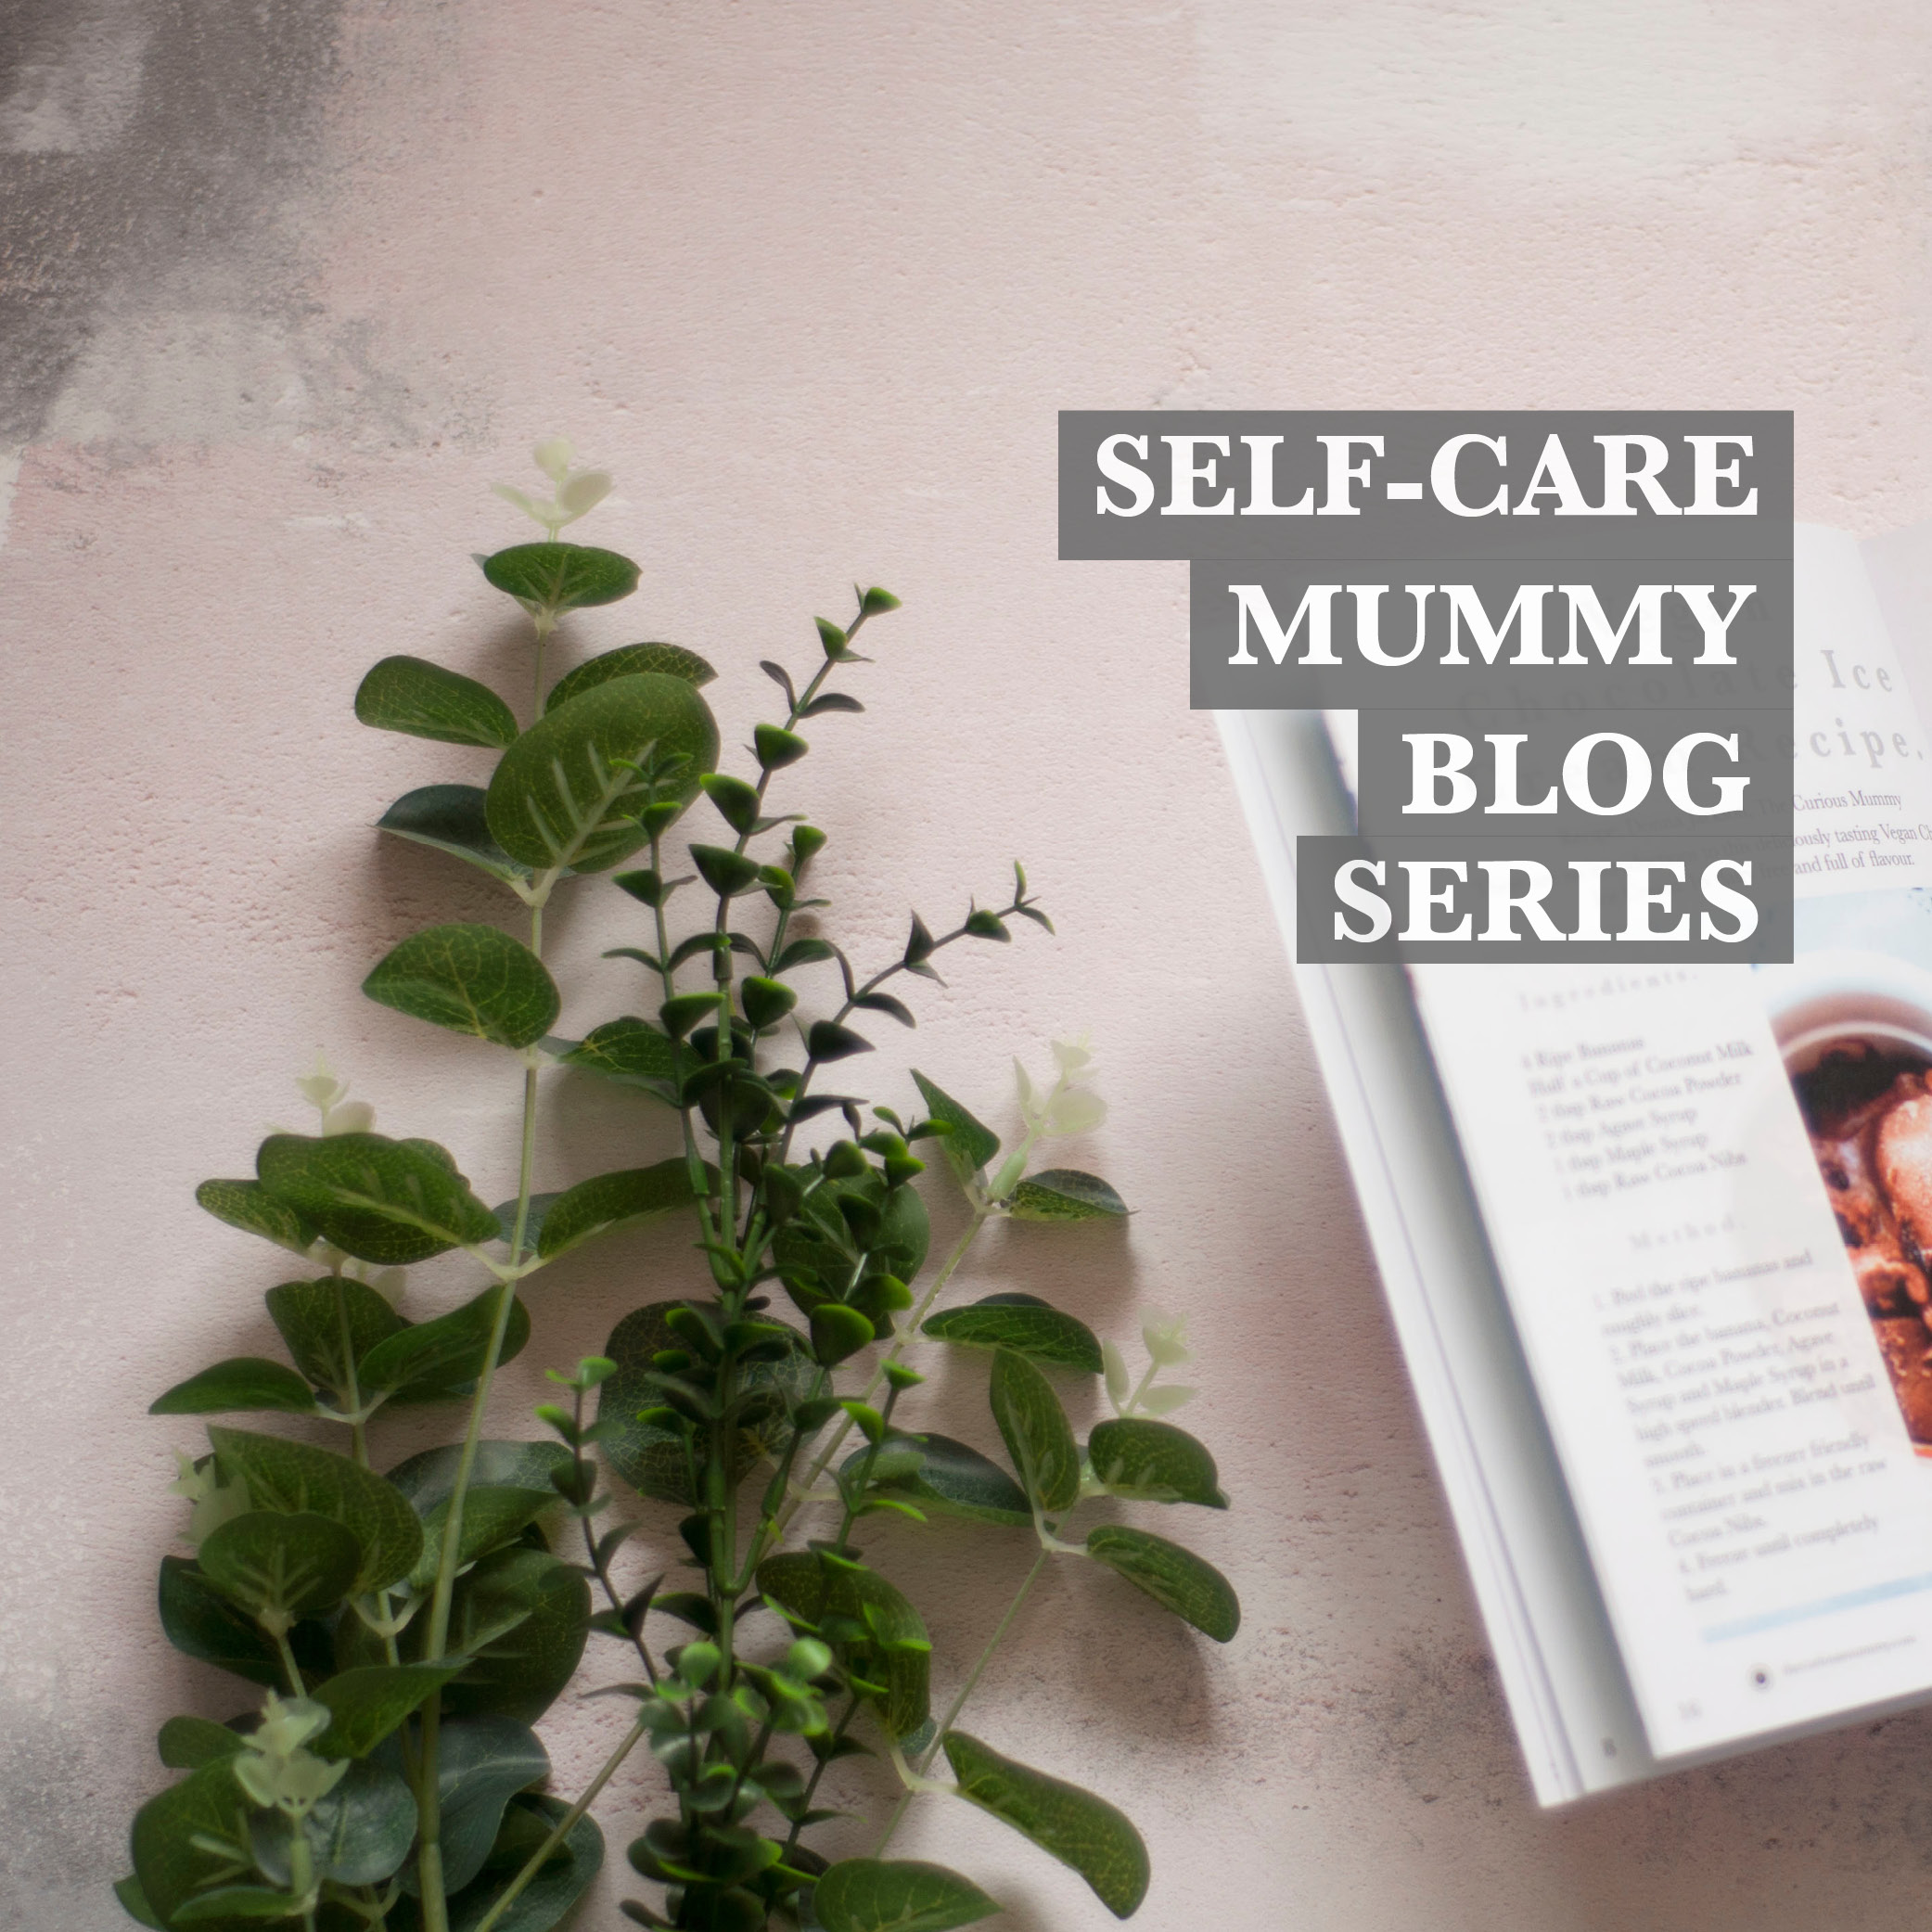 selfcare mummy blog series.jpg